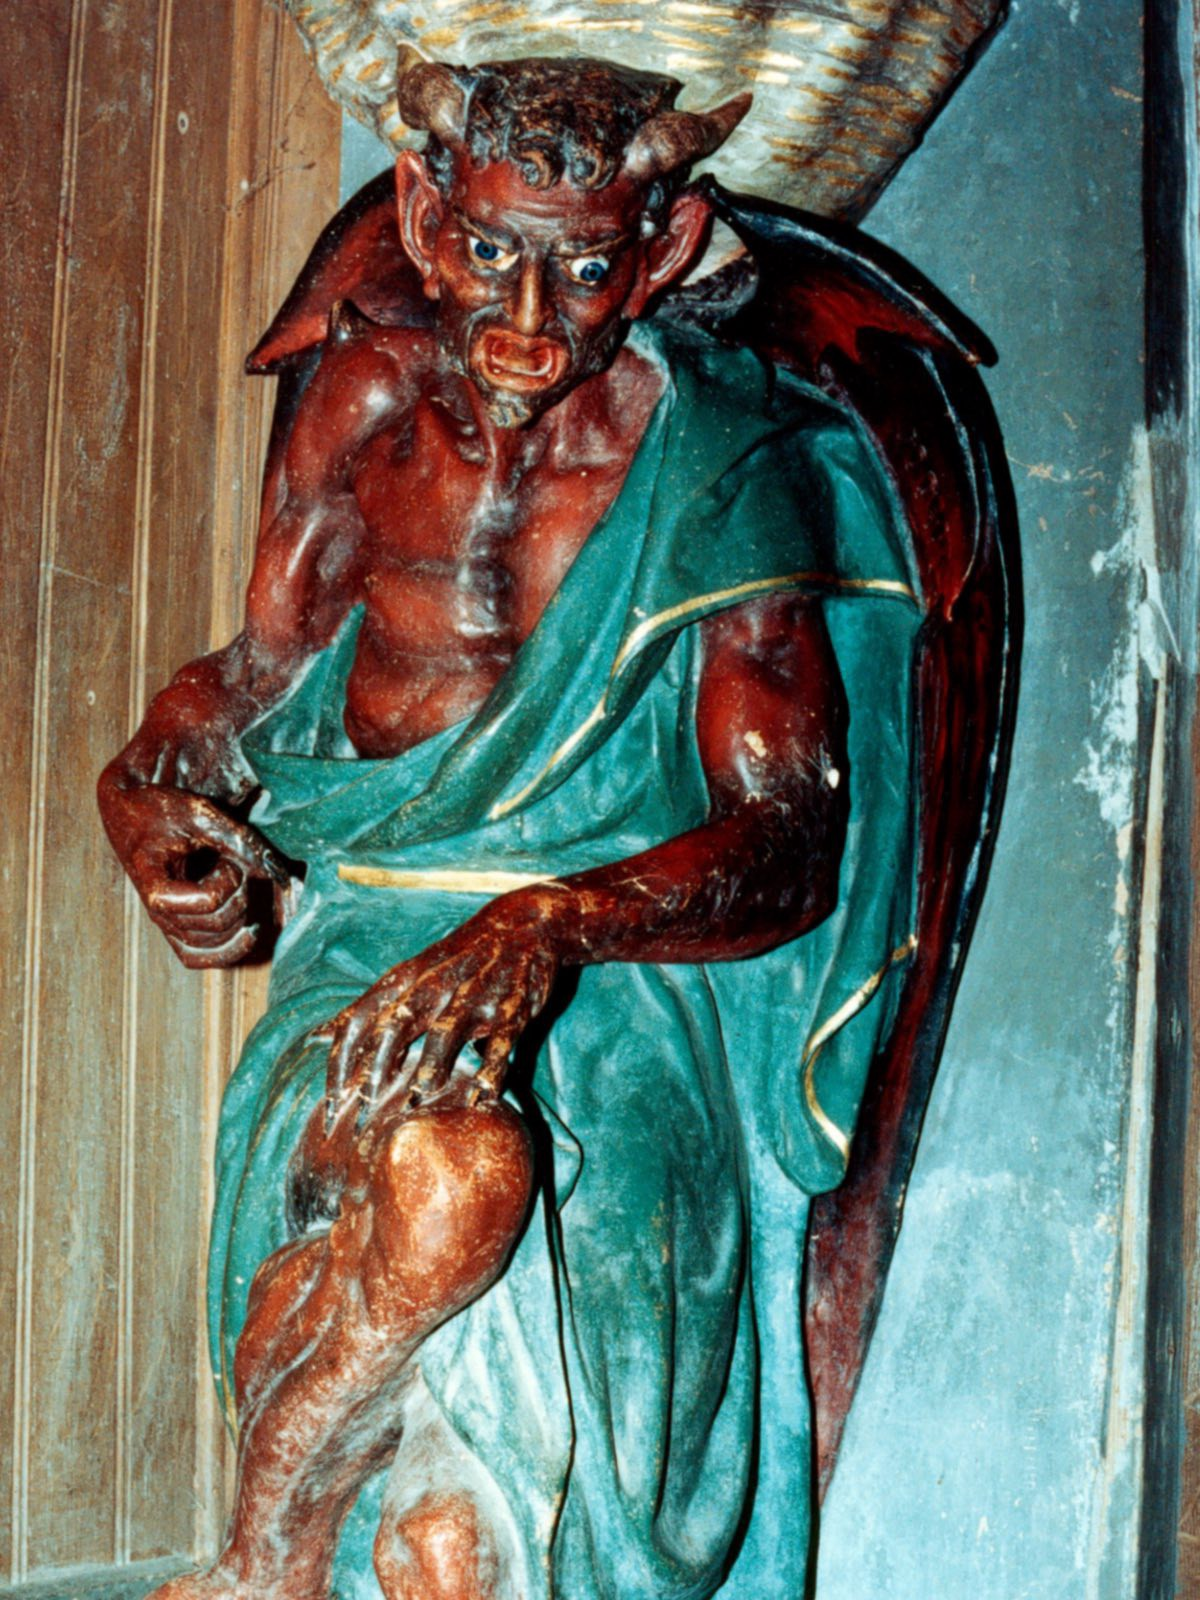 Saunière had this bizarre demonic statue installed near the entrance of the church (credit: Erwan Corre/wiki)